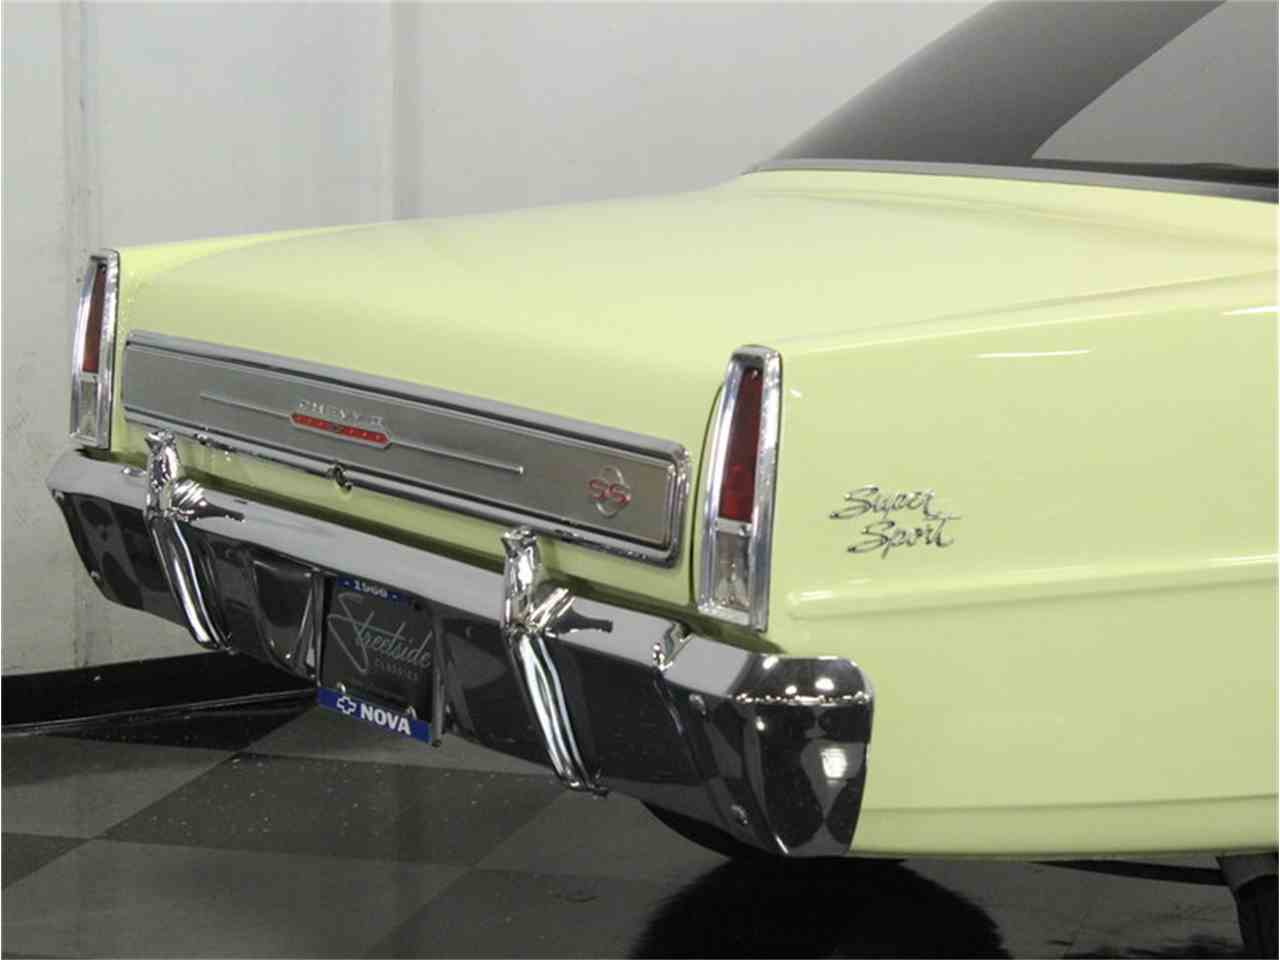 Large Picture of 1966 Nova - $67,995.00 Offered by Streetside Classics - Dallas / Fort Worth - HX89